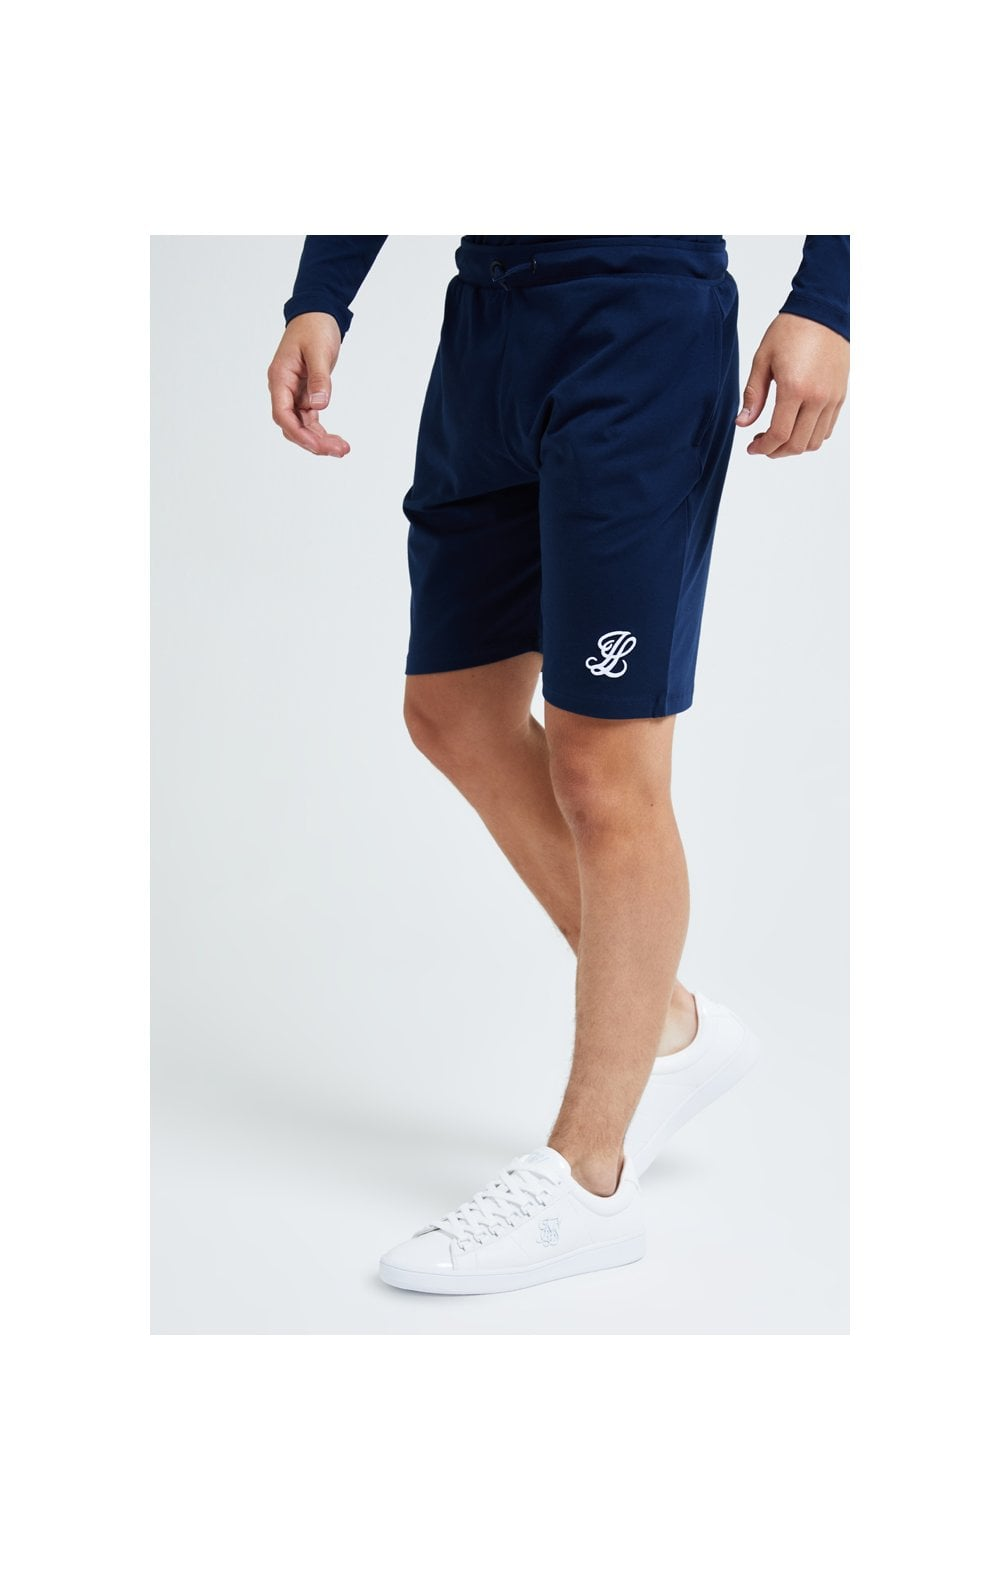 Illusive London Core Jersey Shorts - Navy (1)